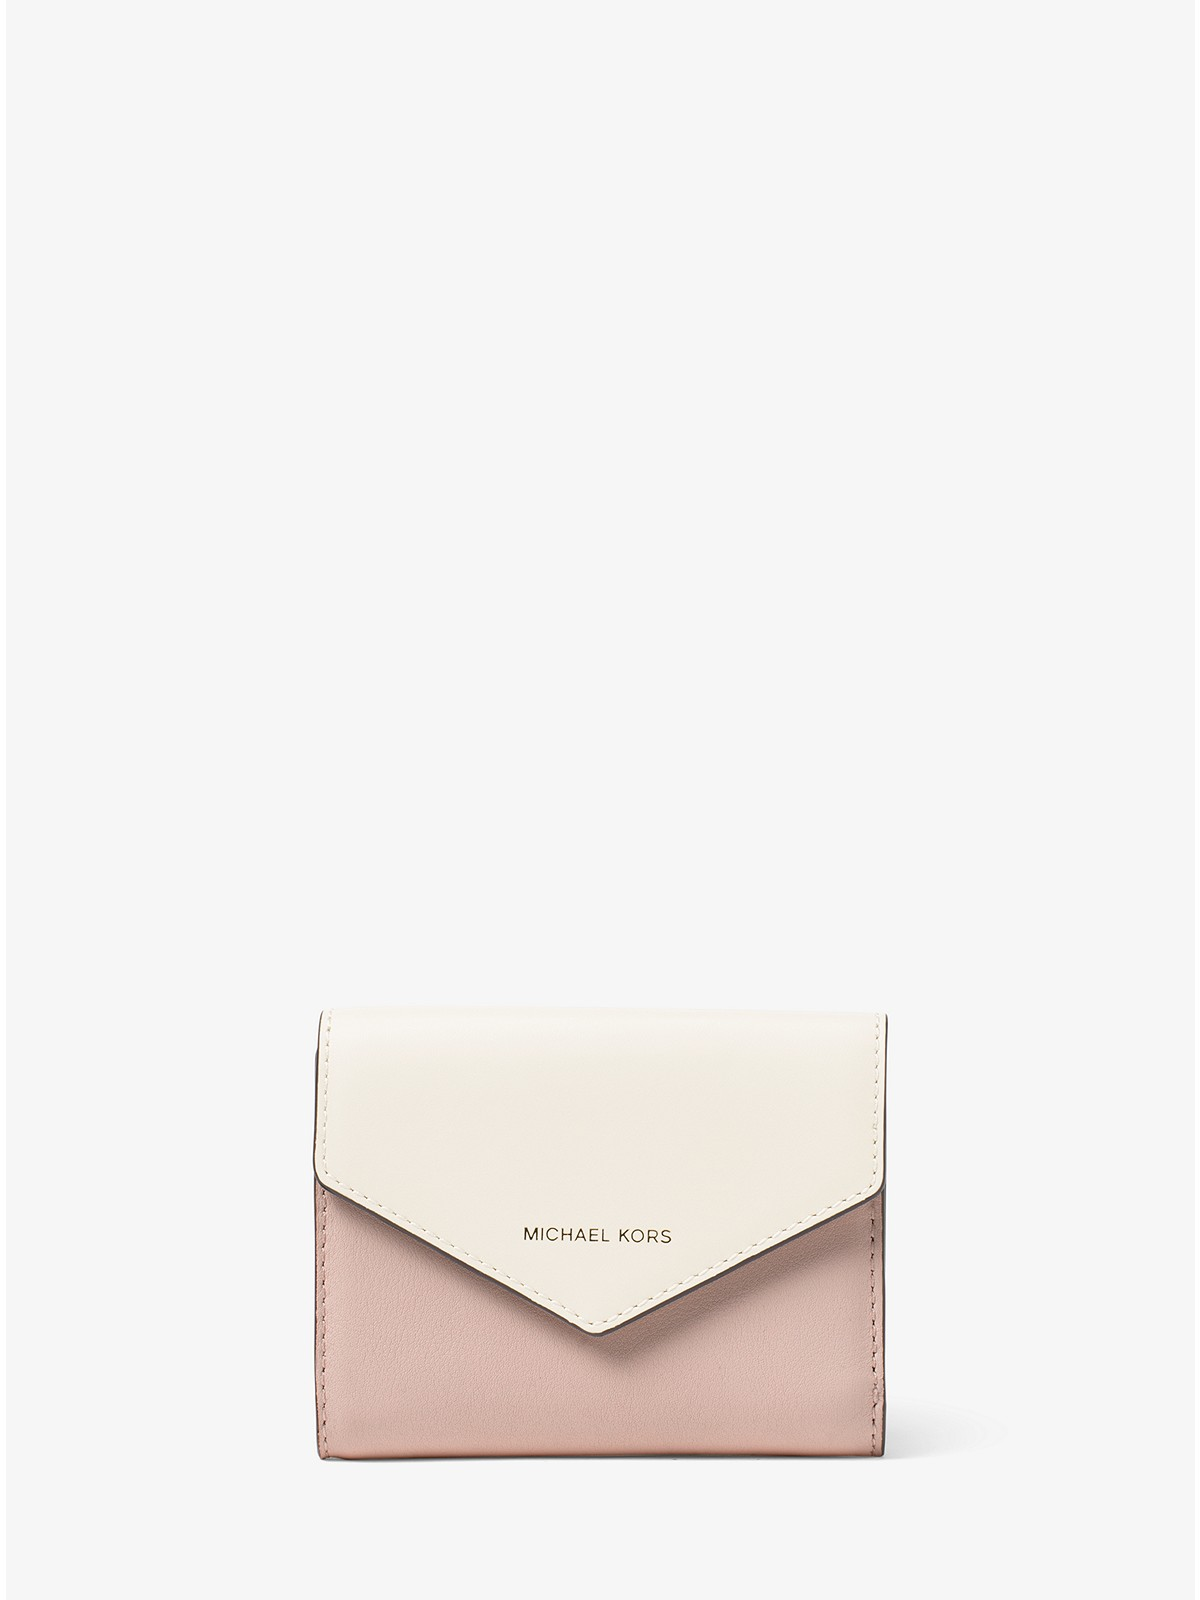 5e8bef189947 Michael Kors Jet Set Small Color-Block Leather Envelope Wallet at ...